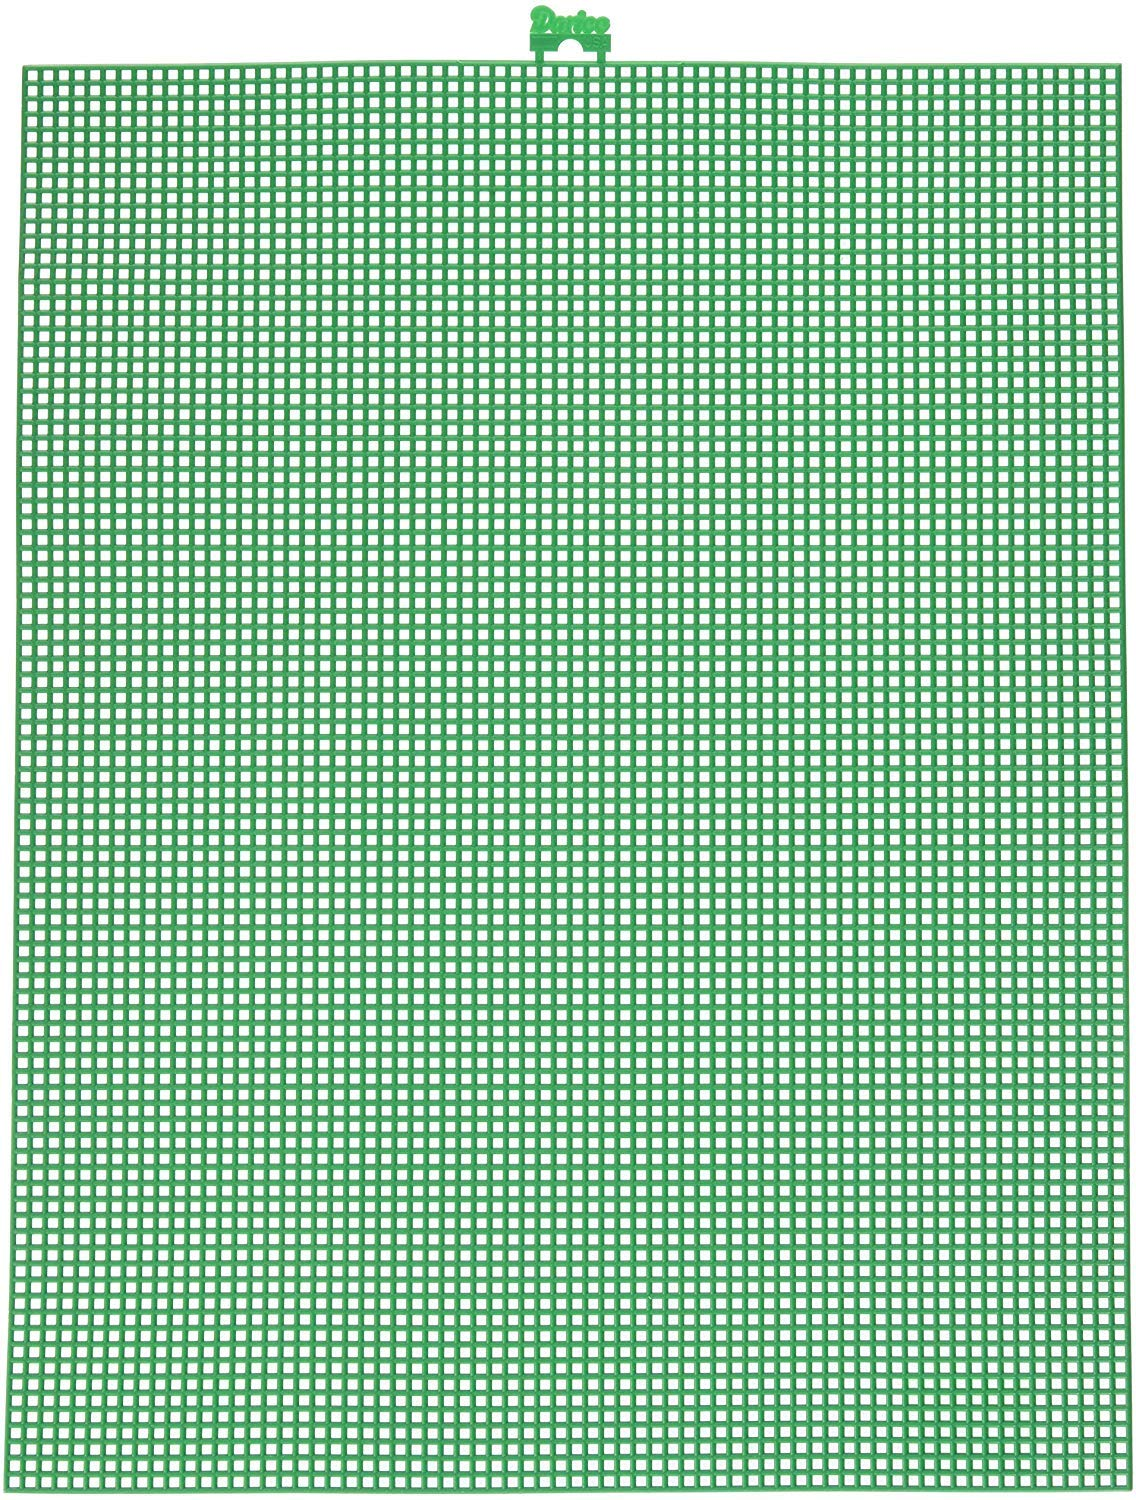 """Darice 7 Mesh Christmas Green Plastic Canvas – Create a Variety of Fun Plastic Canvas Crafts Including Bookmarks, Picture Frames, Pins and More – 1 Sheet, 7 Holes Per Inch, 10.5""""x13.5"""" Per Sheet"""